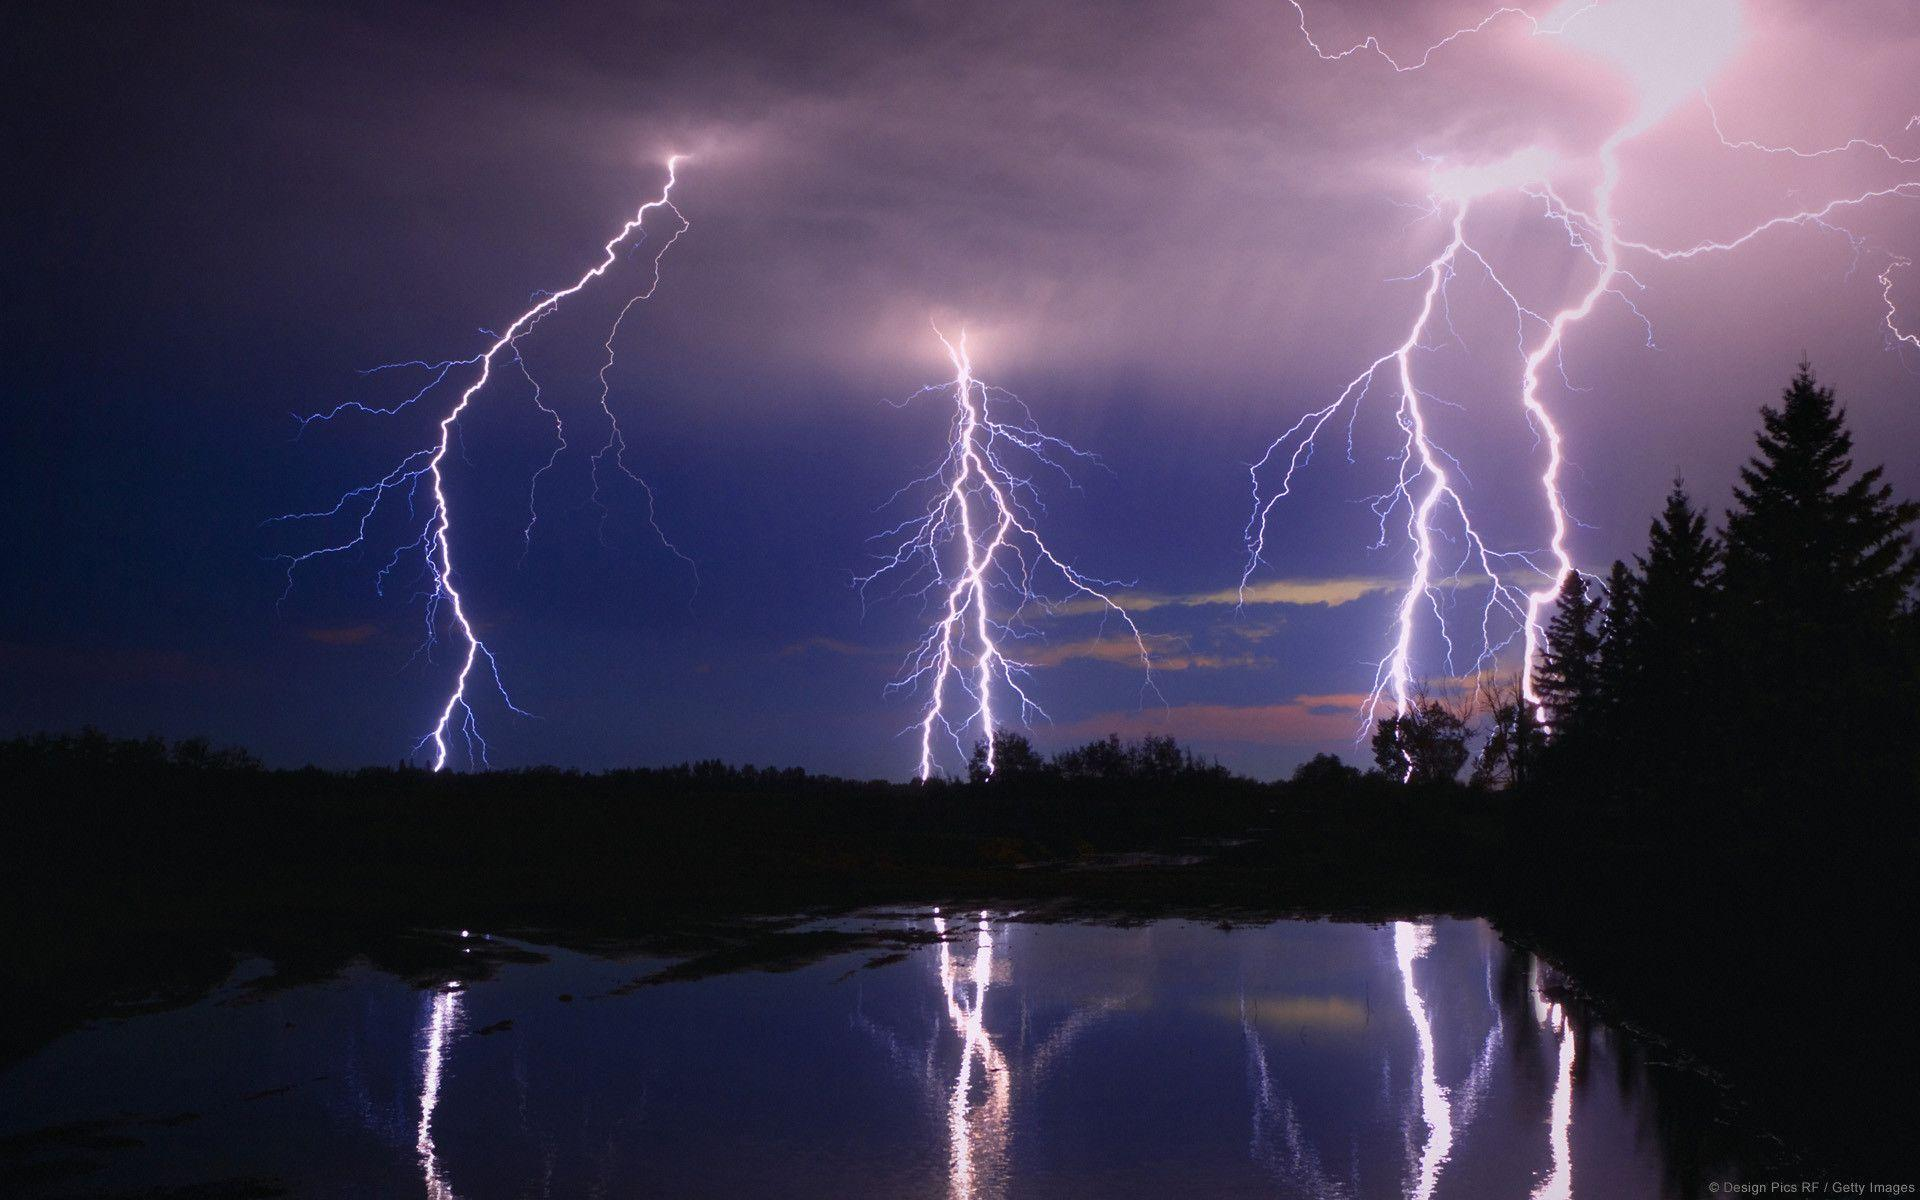 Wallpapers For > Hd Lightning Bolt Wallpaper